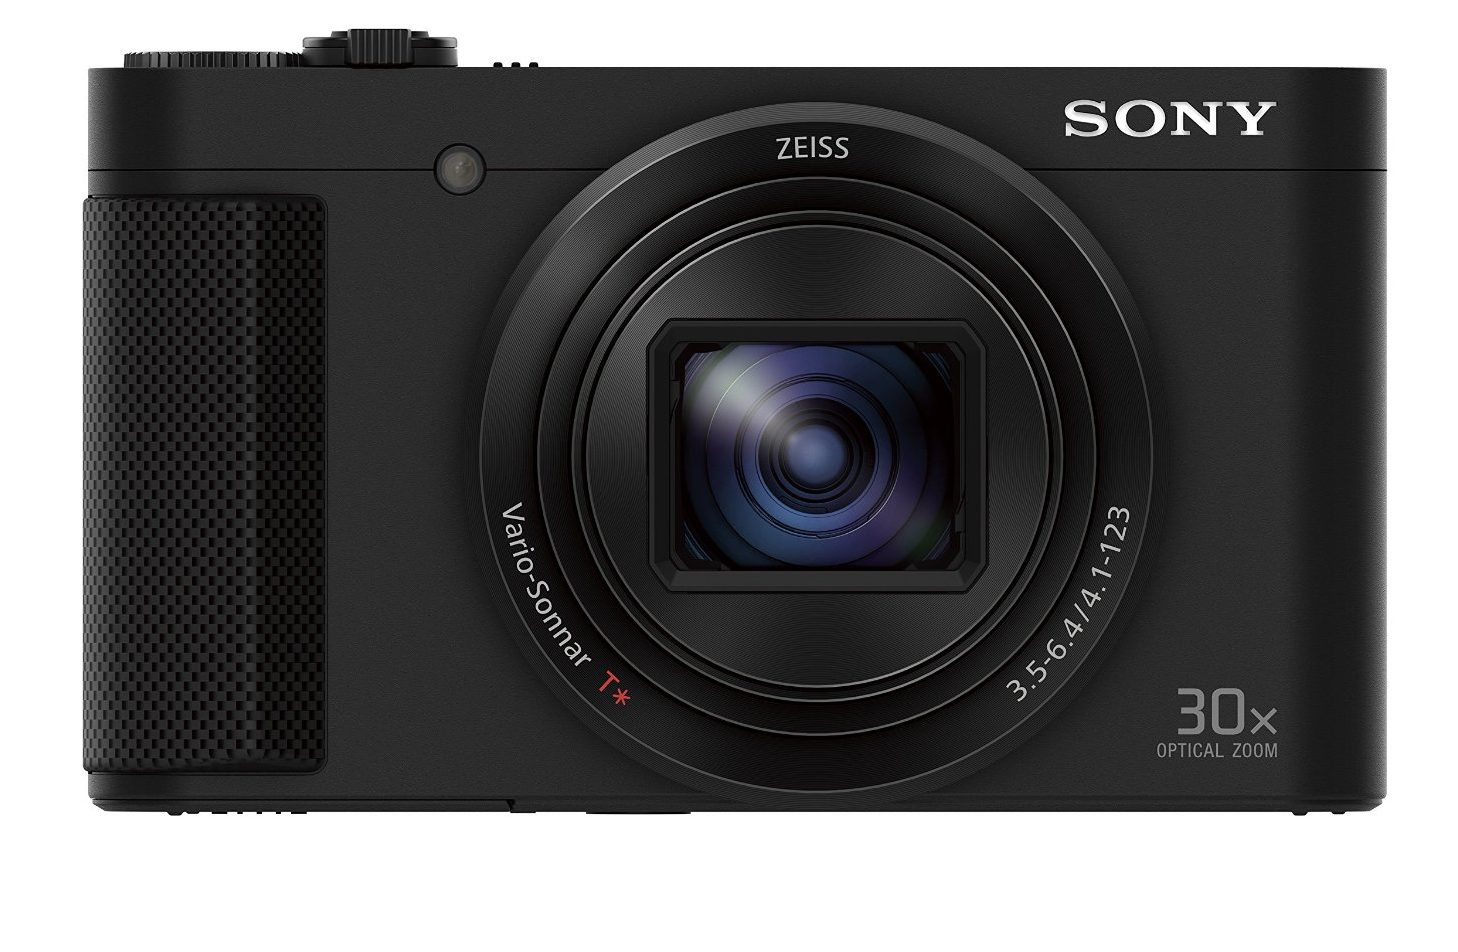 Sony DSCHX80/B High Zoom Point & Shoot Camera $369.99